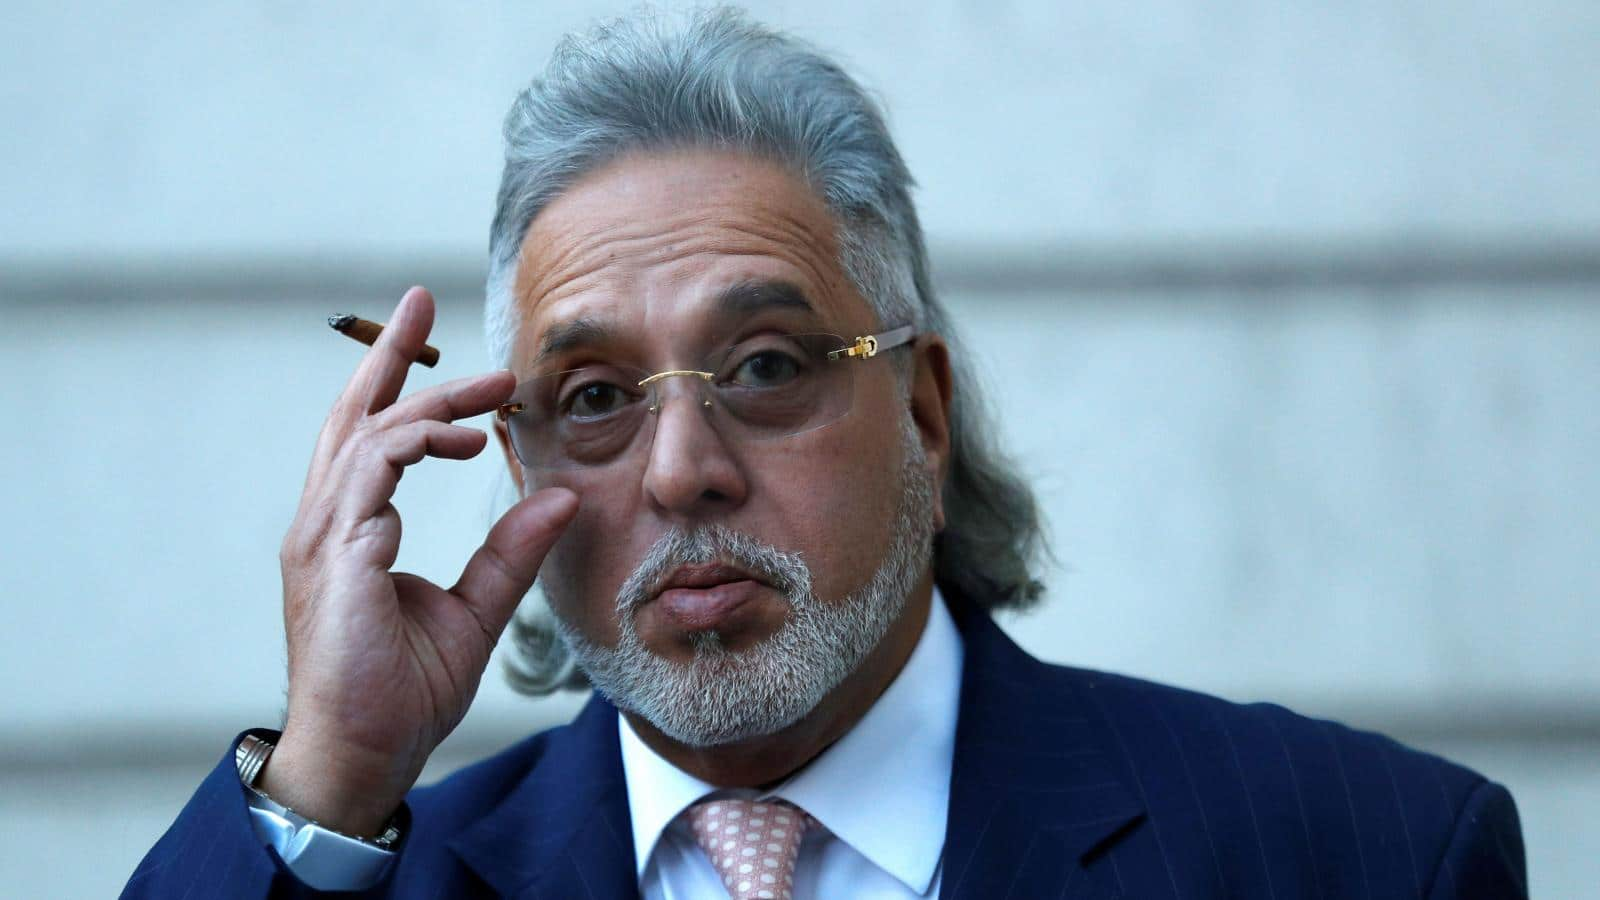 Vijay Mallya Urges Govt To Take His Money & Close His Case, Twitter Says